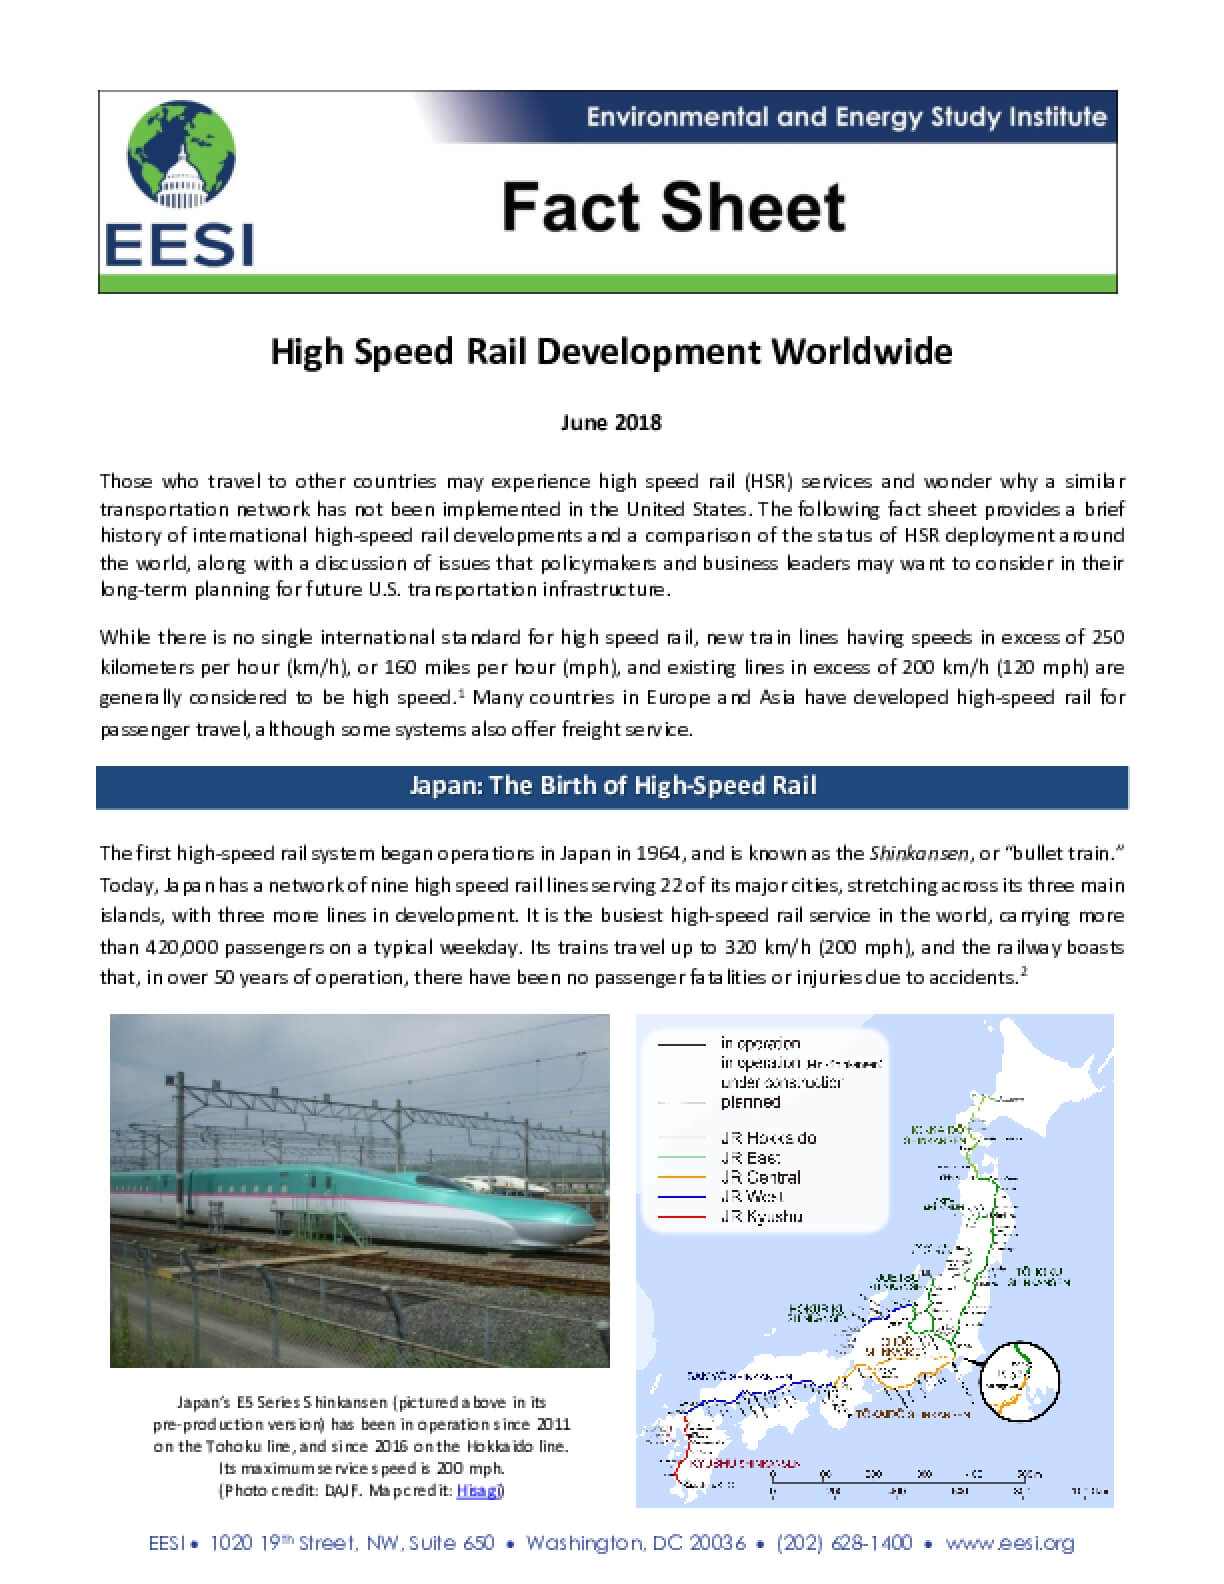 High Speed Rail Development Worldwide